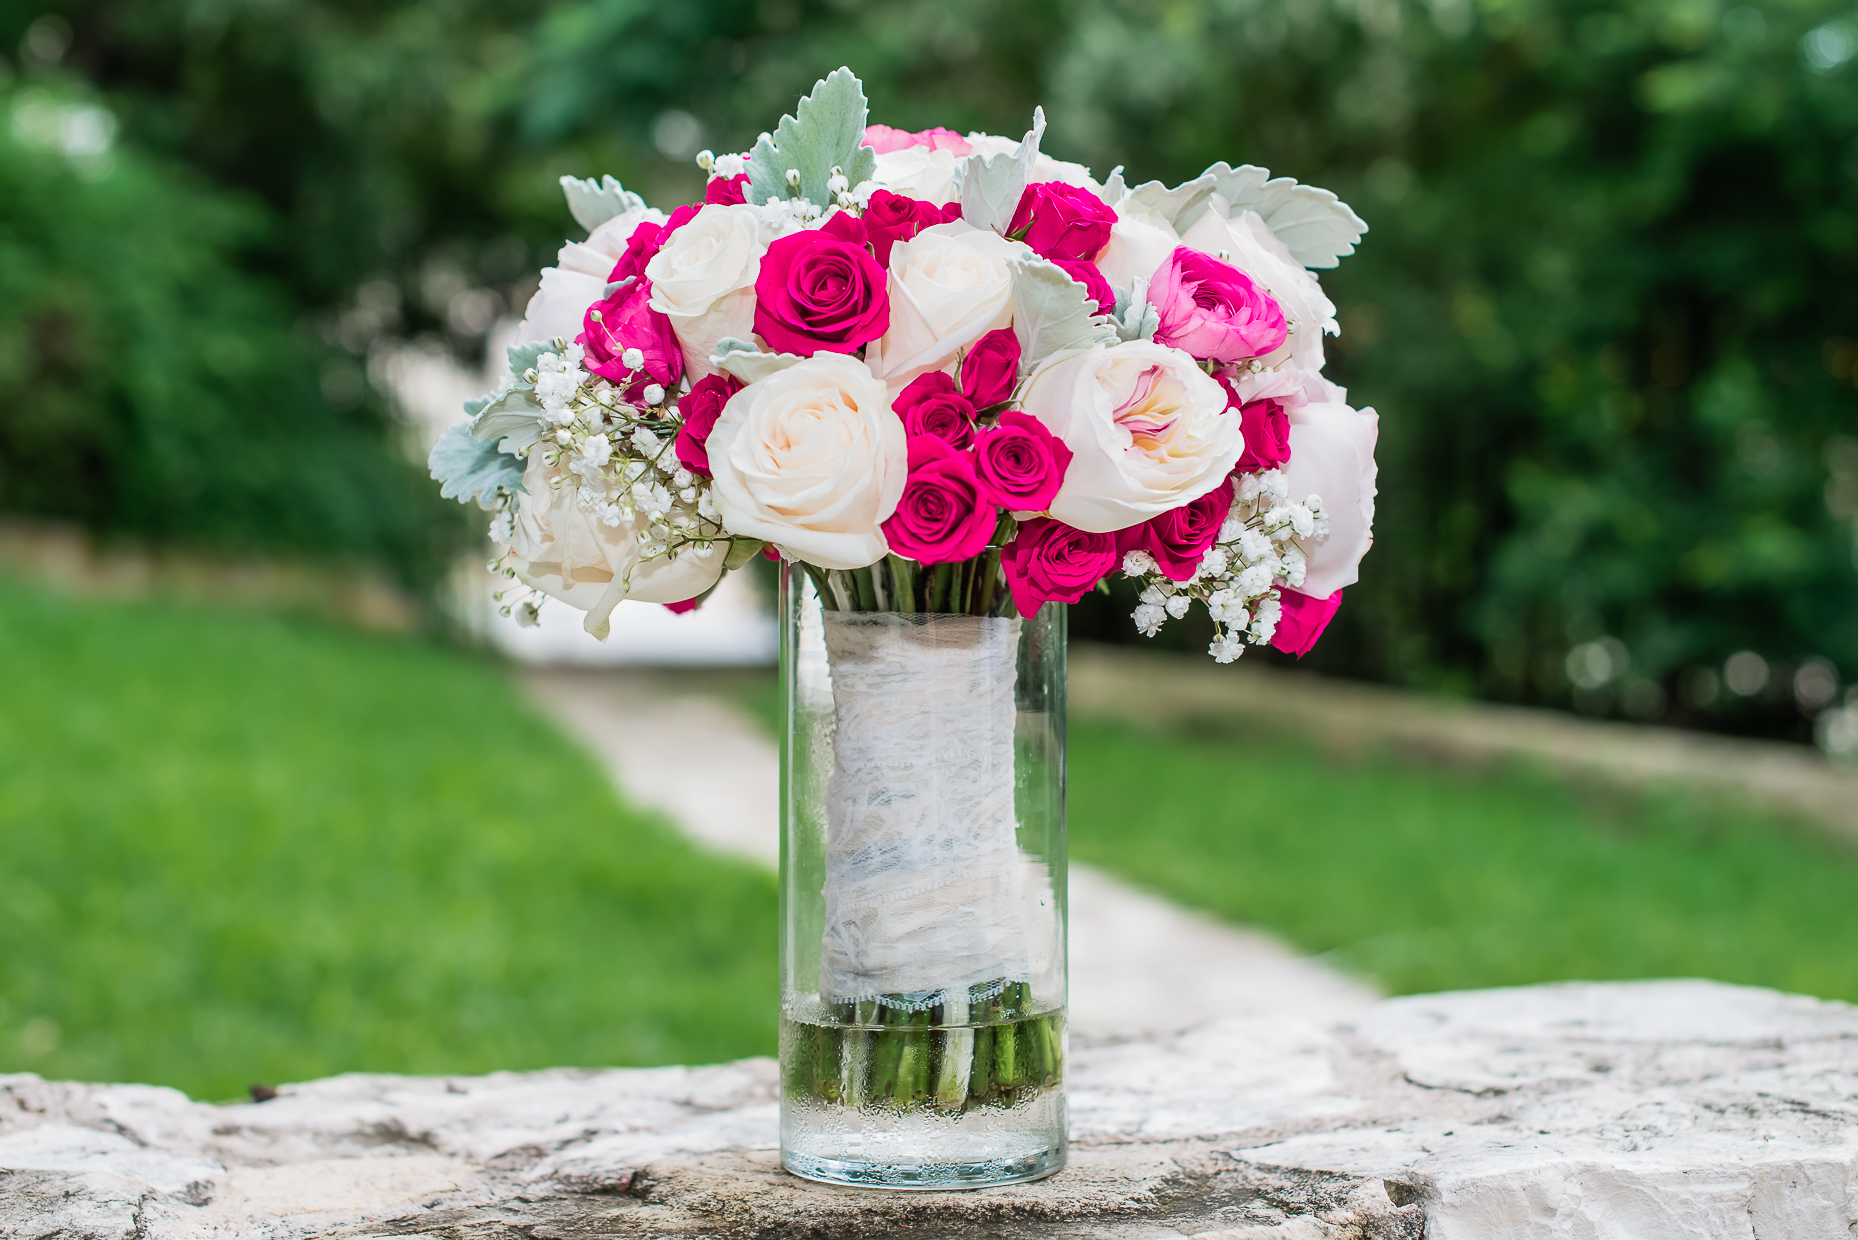 Austin-Wedding-Photographer-Songbird-Allan-House-bouquet-white-pink-roses